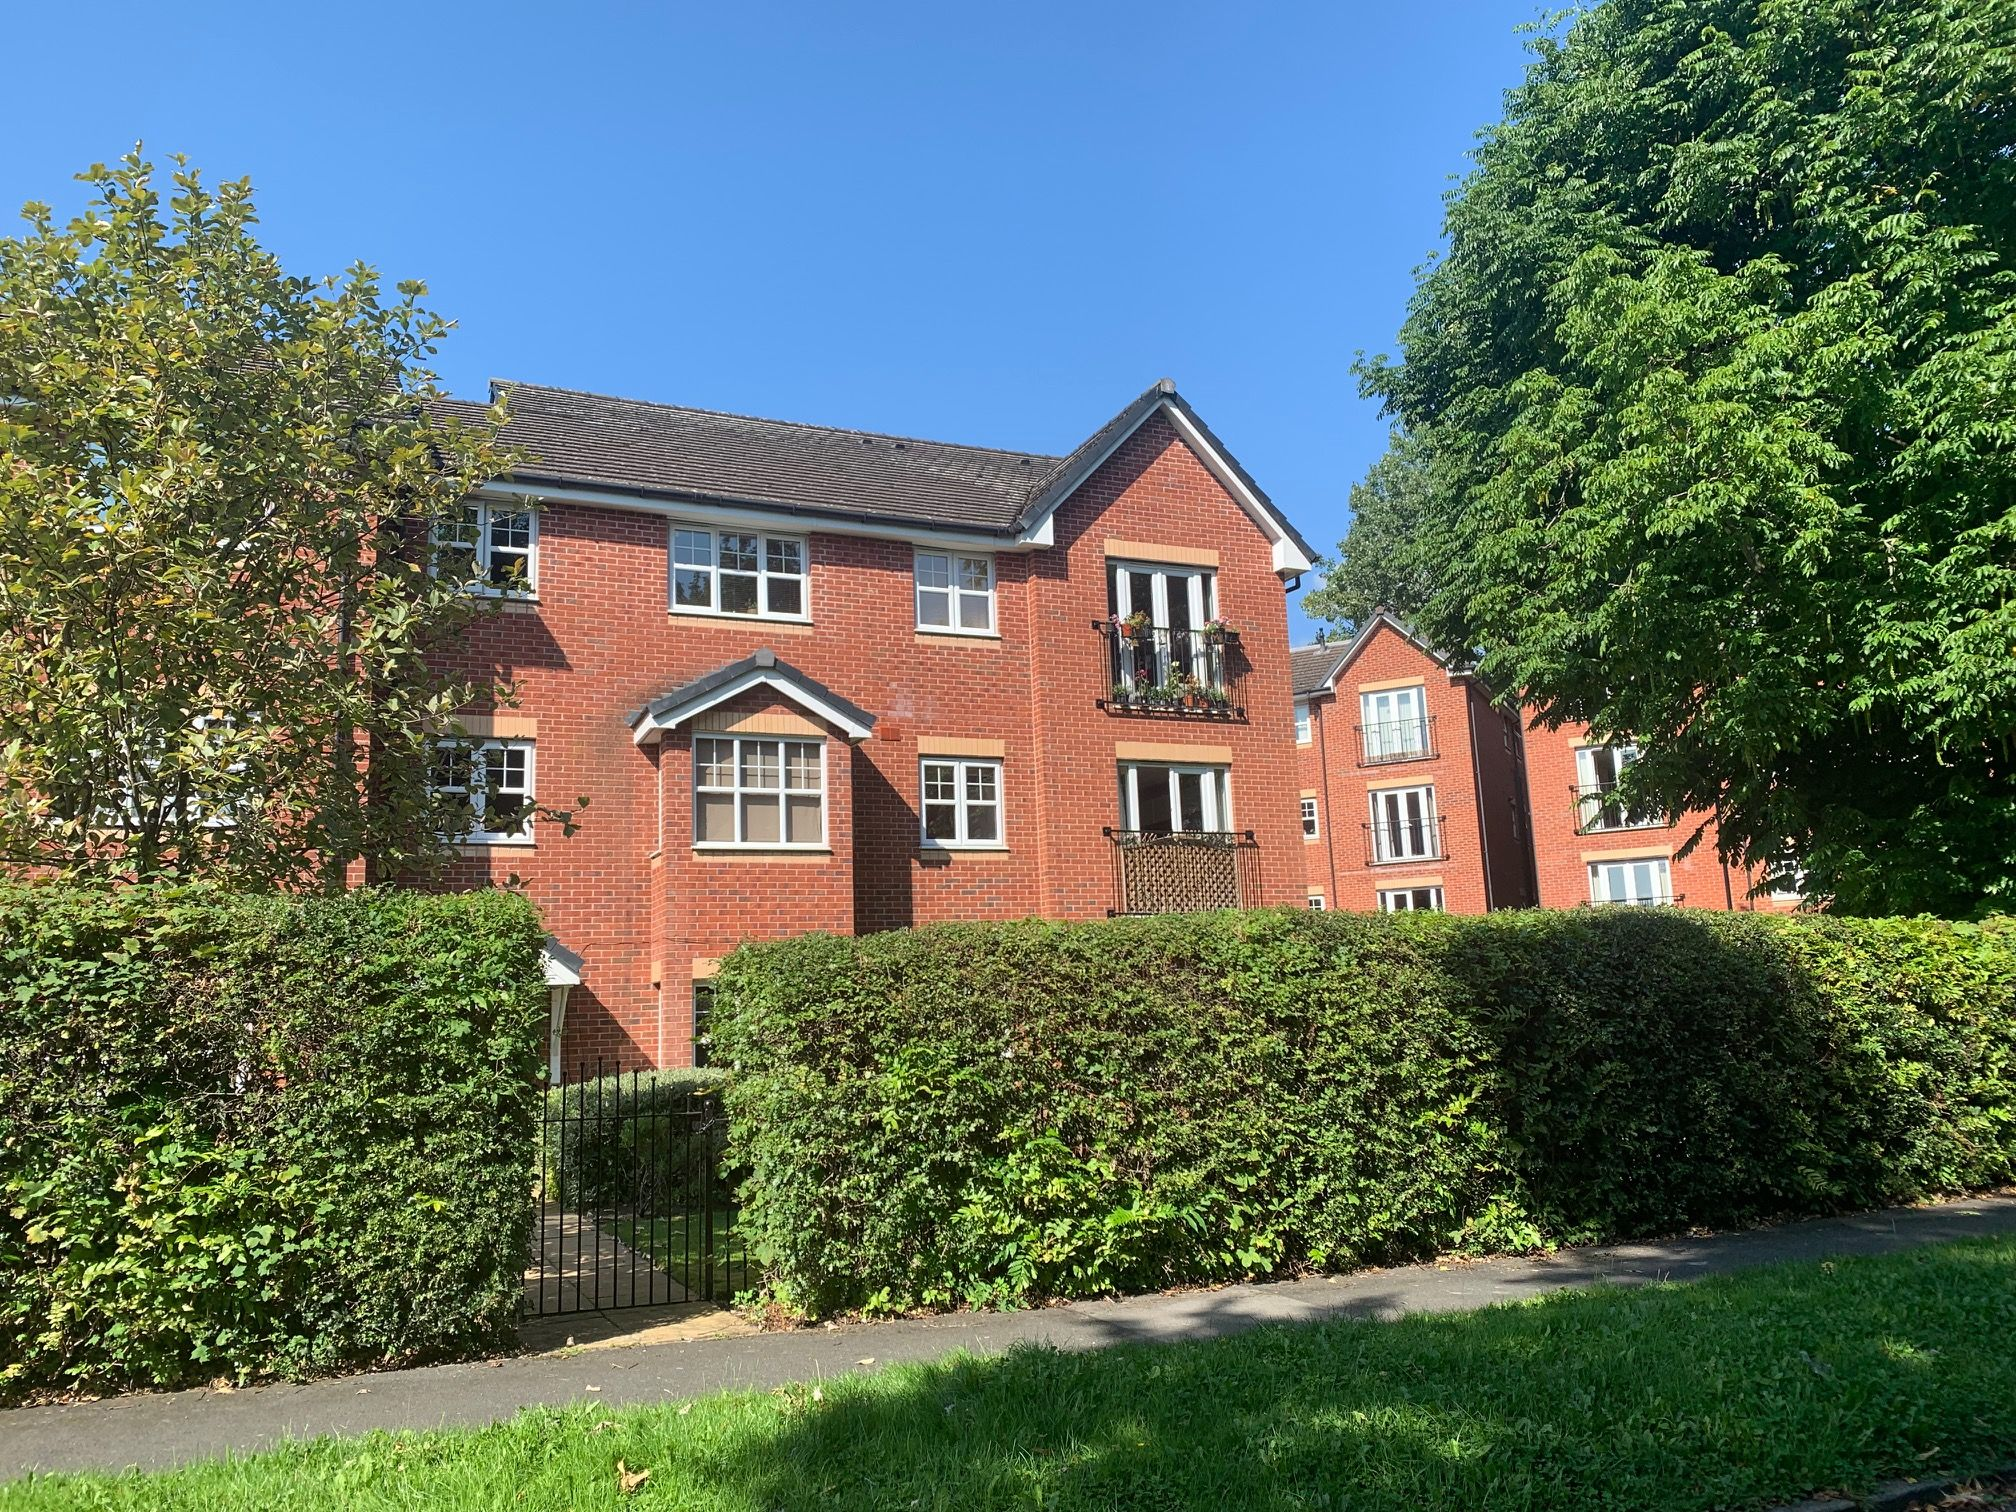 2 bedroom apartment flat/apartment Reserved in Manchester - Photograph 1.